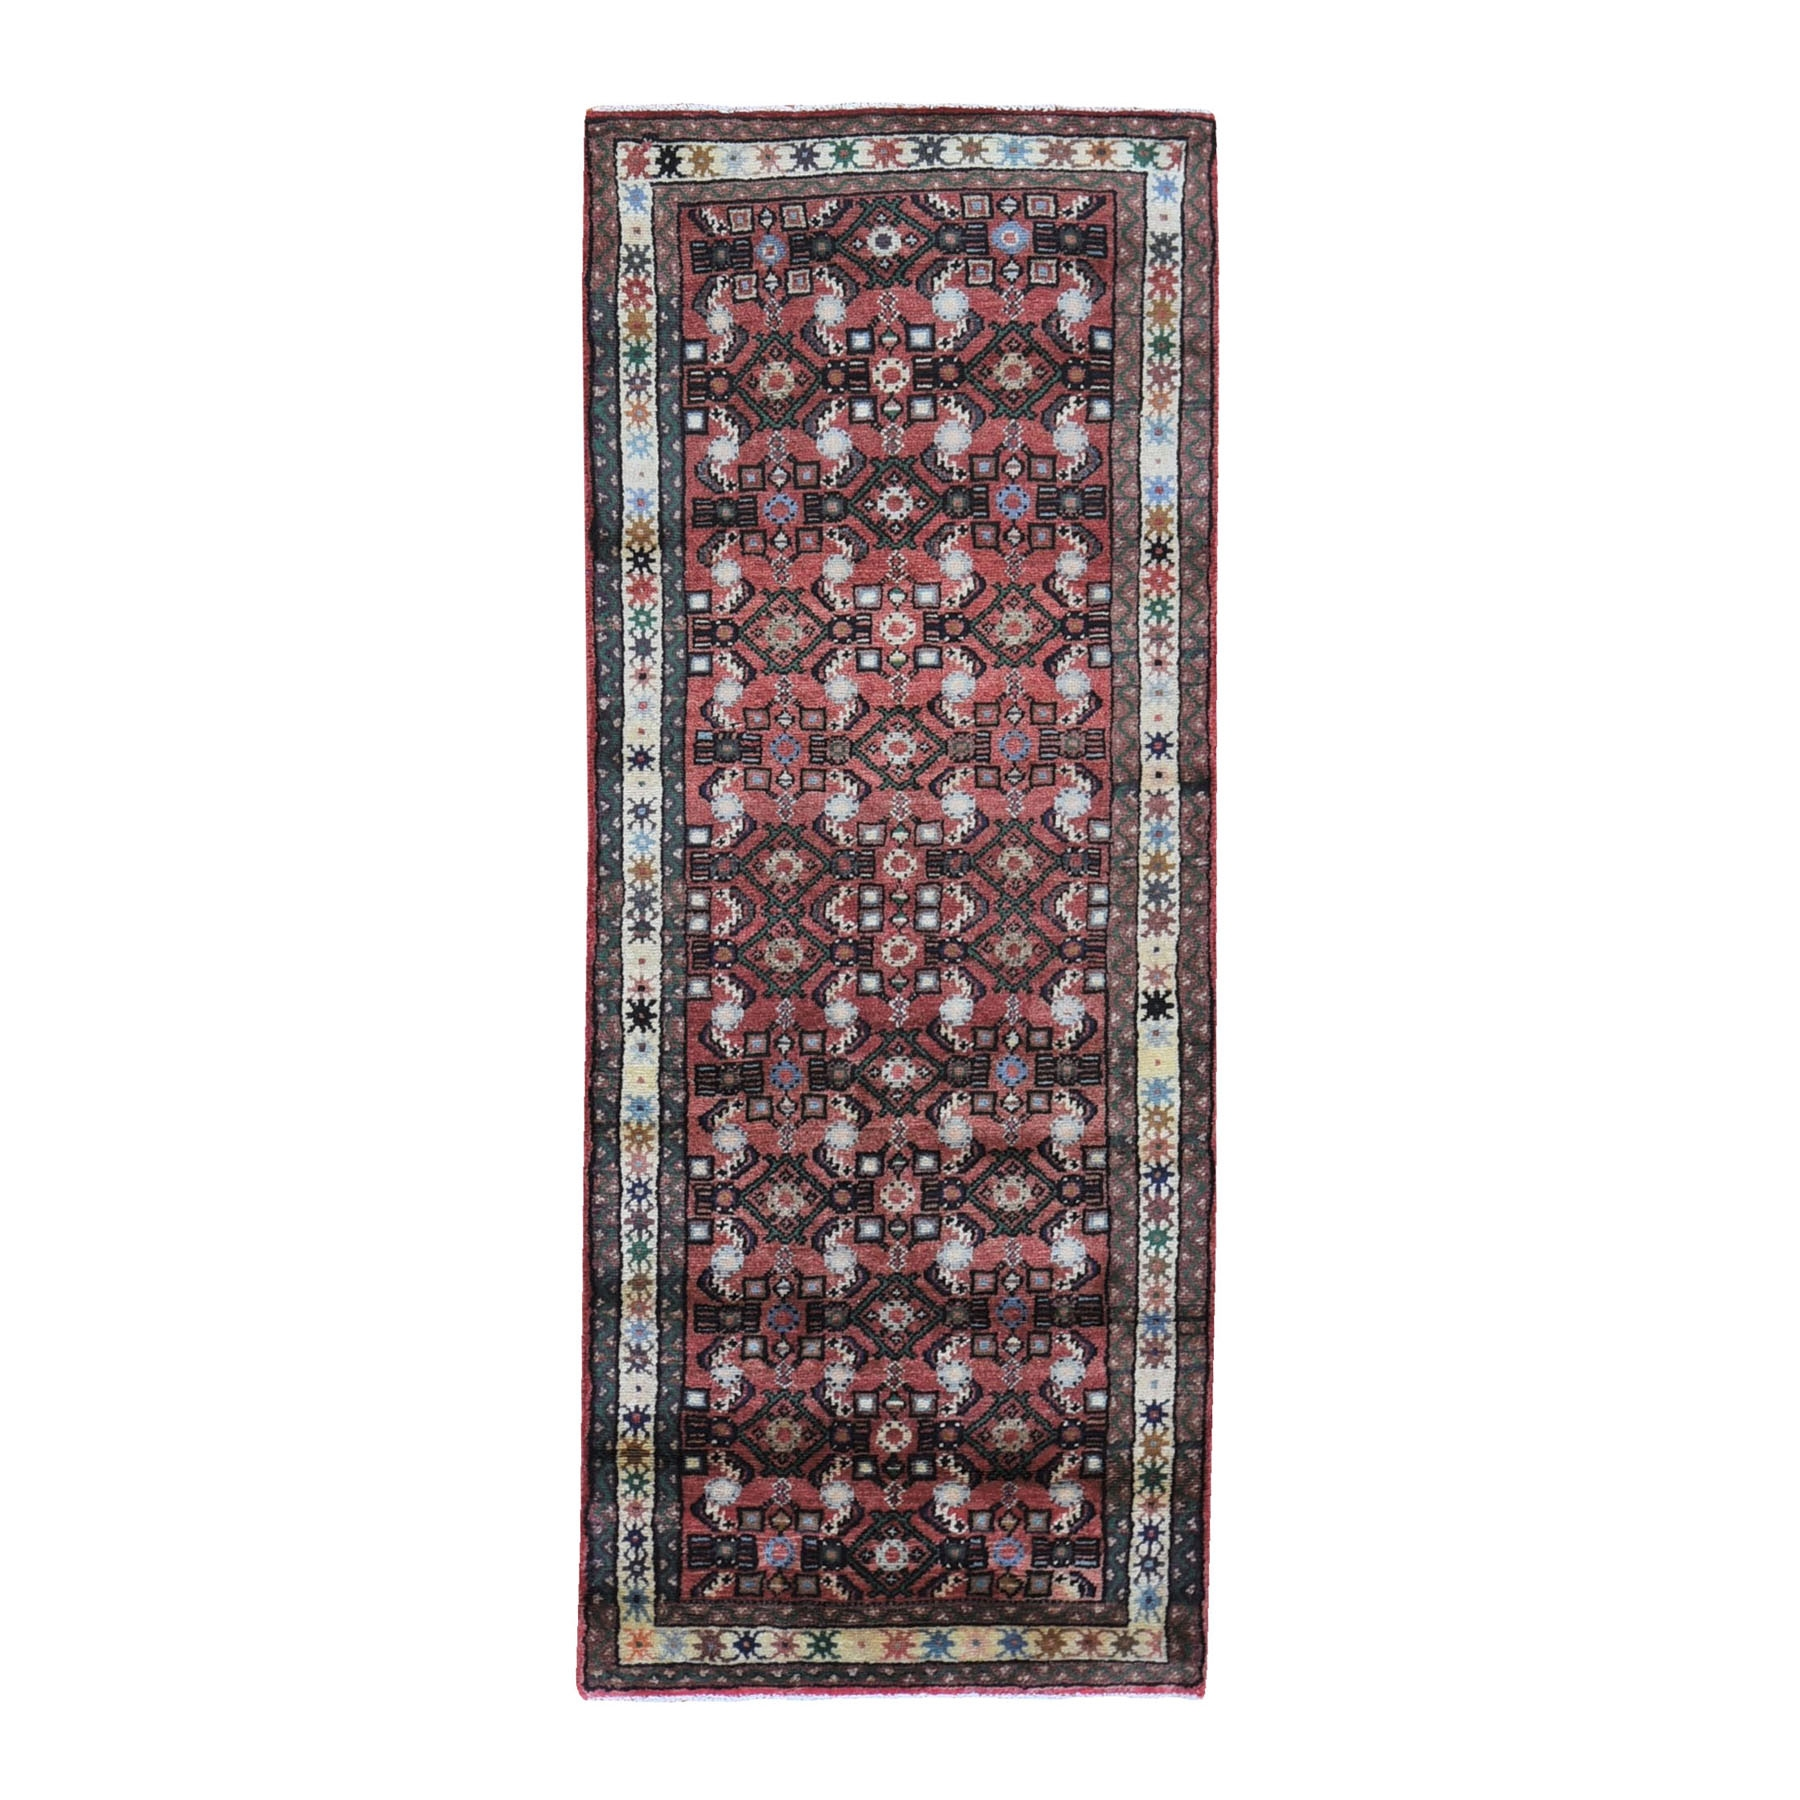 "2'6""x6'3"" New Persian Hamadan Herat All Over Fish Design Pure Wool Hand Knotted Oriental Rug"